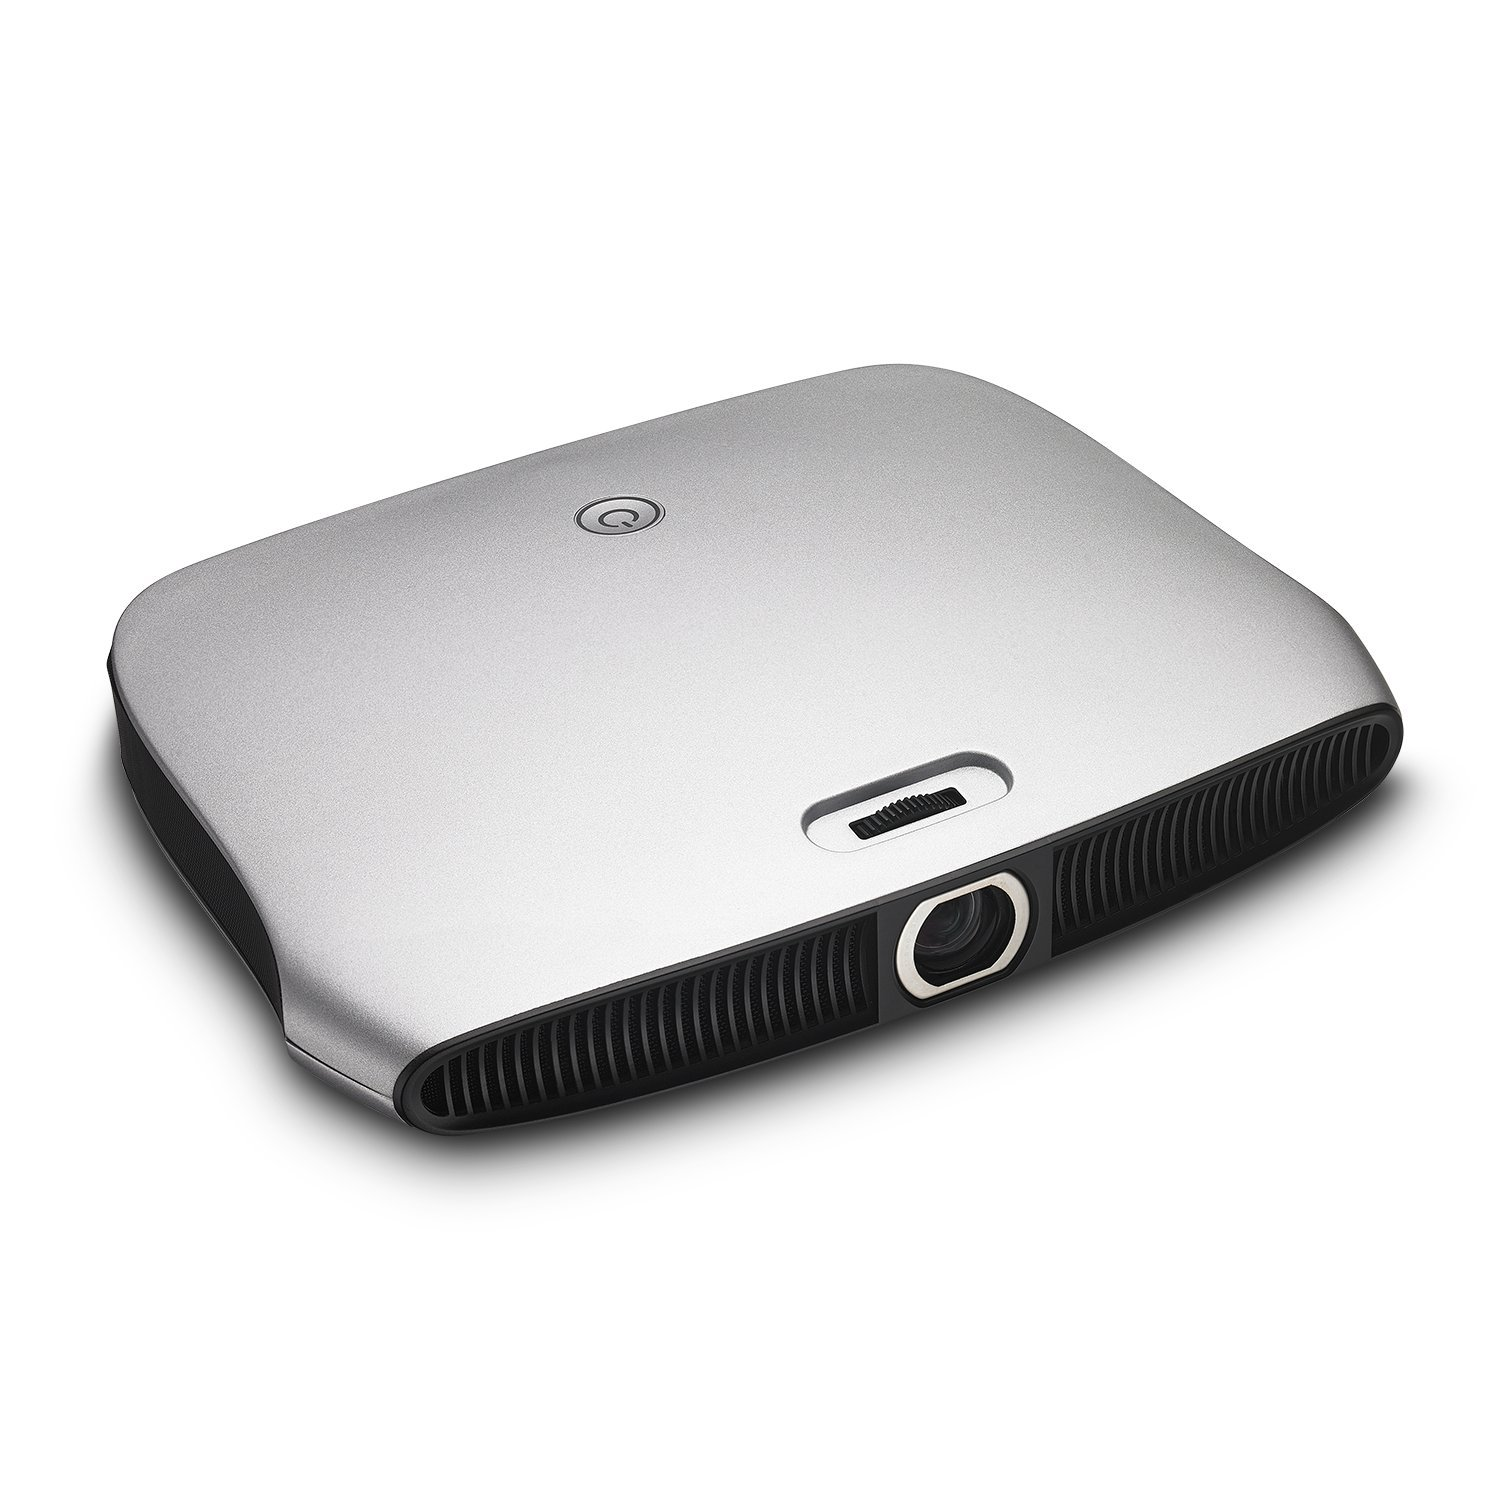 Zenbility V8Plus 4K 3D Portable Slim Mini DLP Projector, 64 Bit Architecture, Quad Core Processor, Android, Built-in Rechargeable Battery, Wifi, Bluetooth, for Home Theater, Presentations, w/ Remote